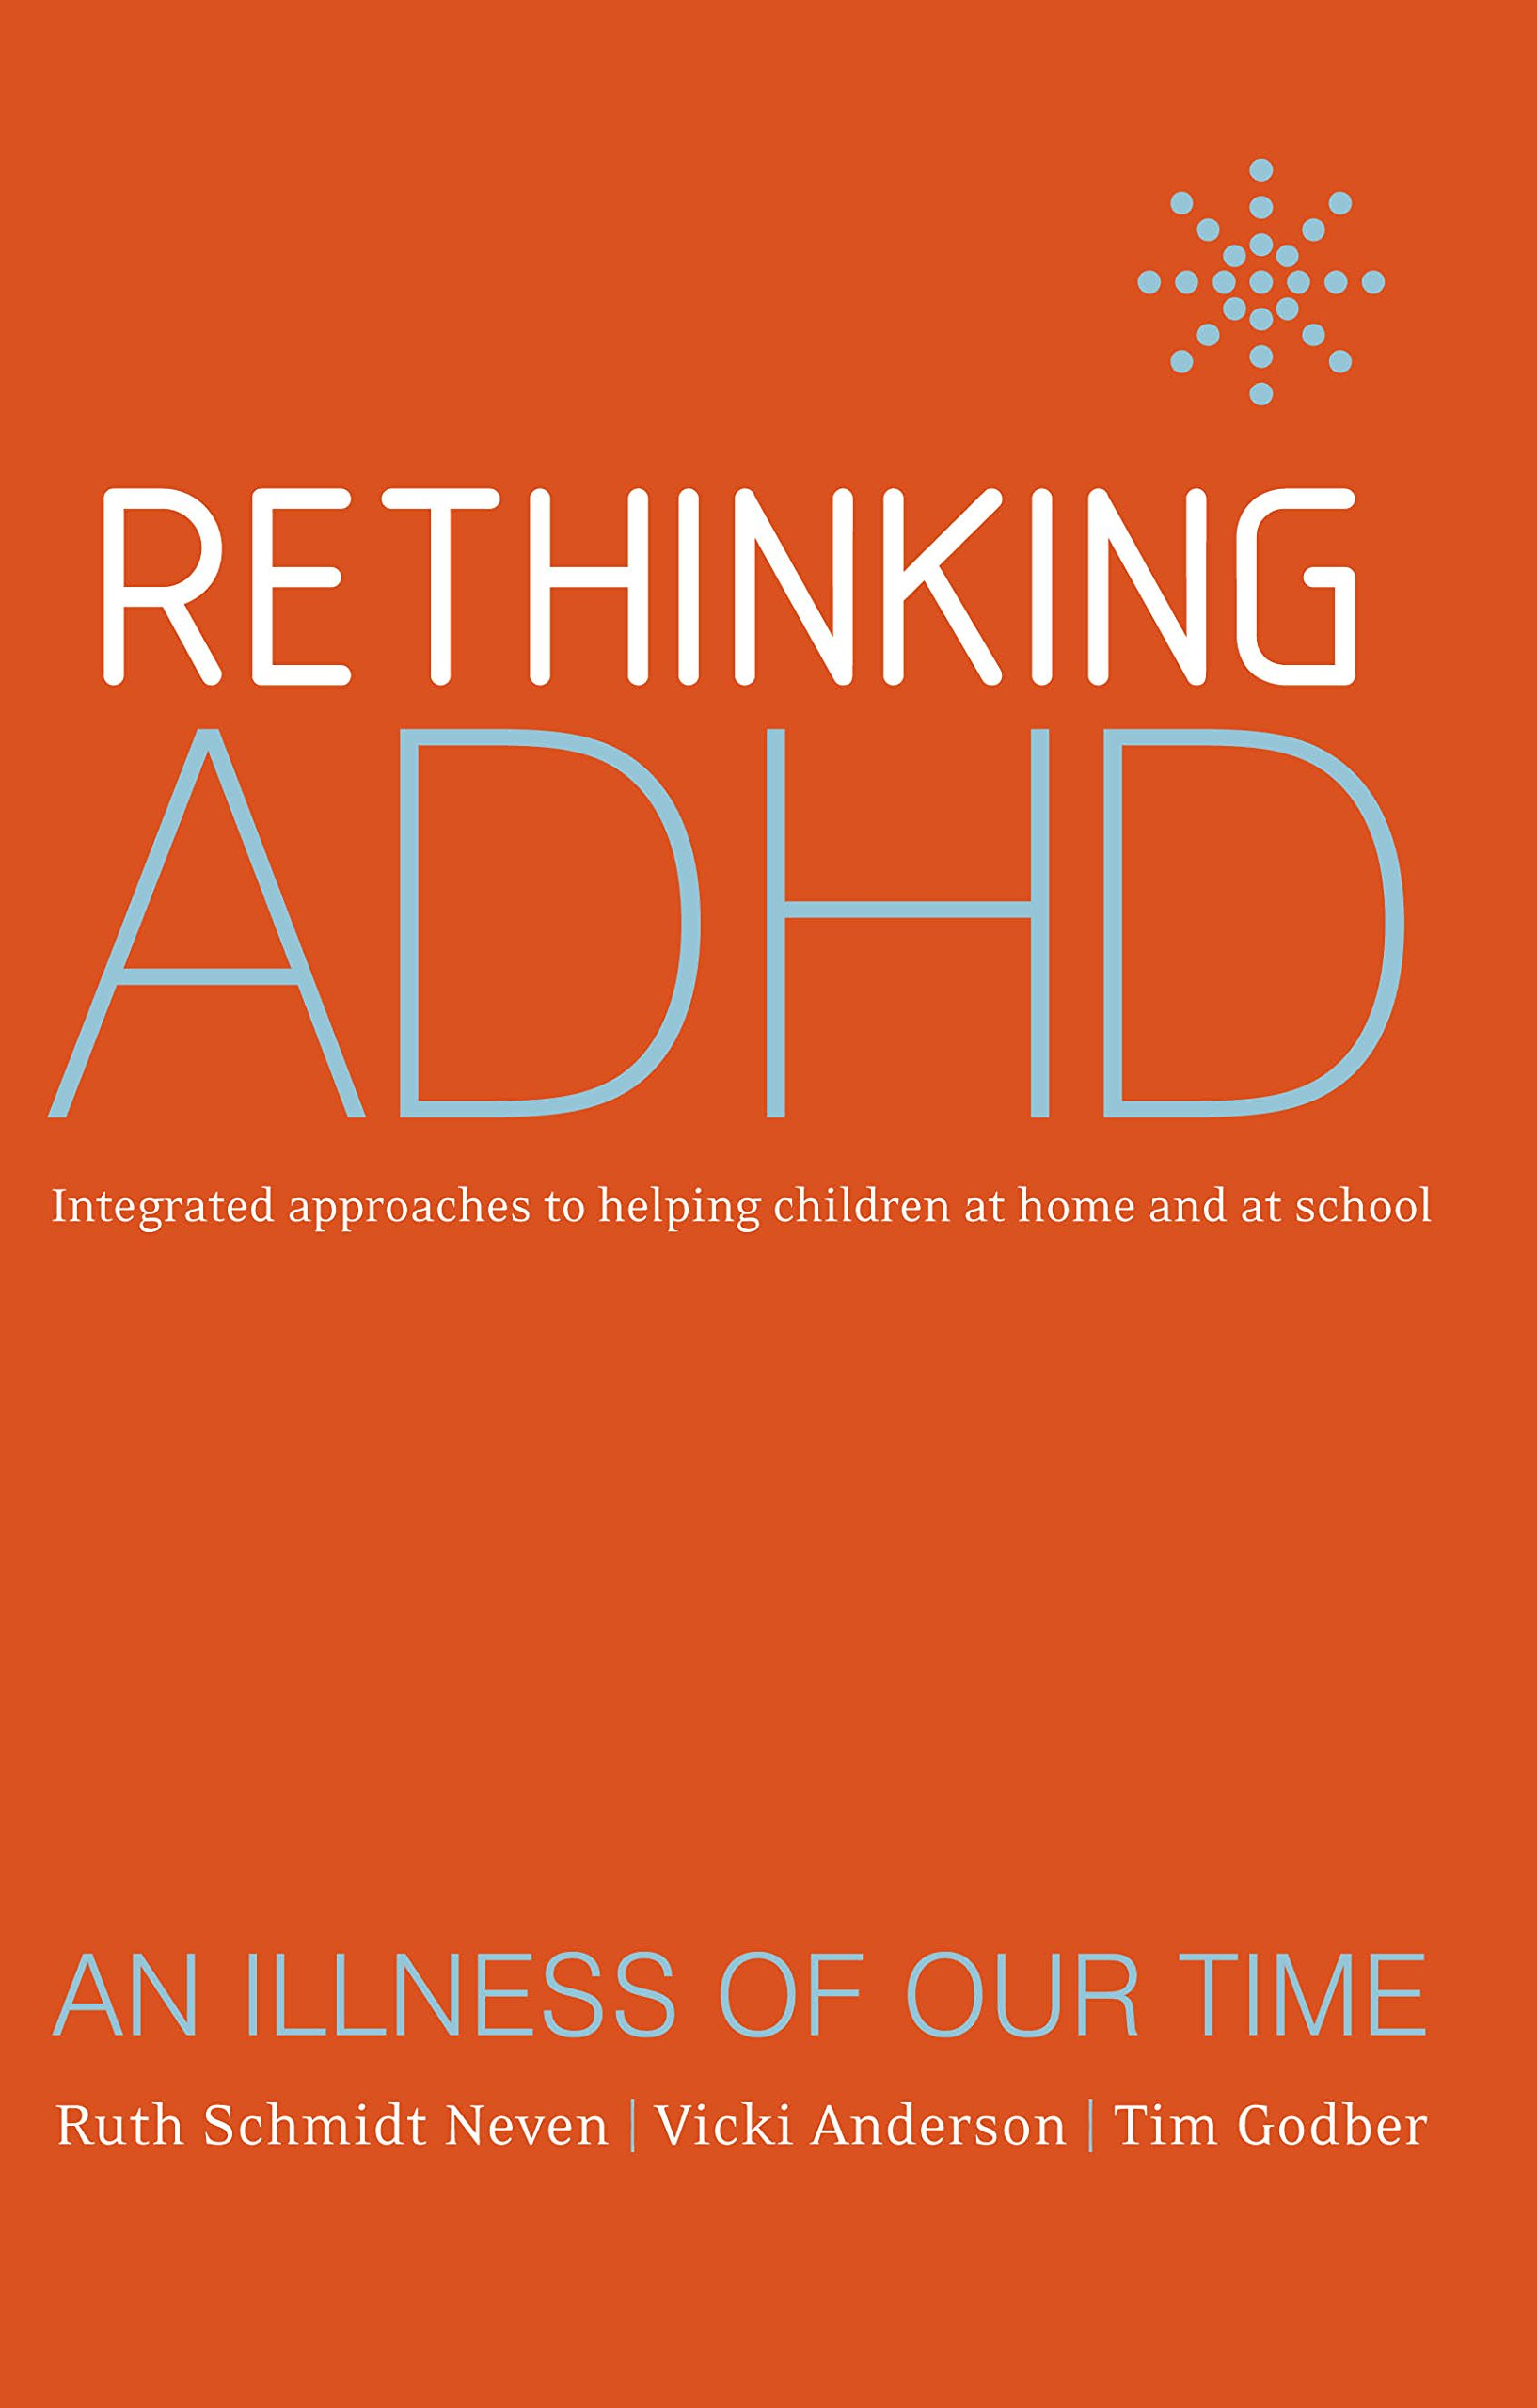 Download Rethinking ADHD: Integrated Approaches to Helping Children at Home and at School ebook